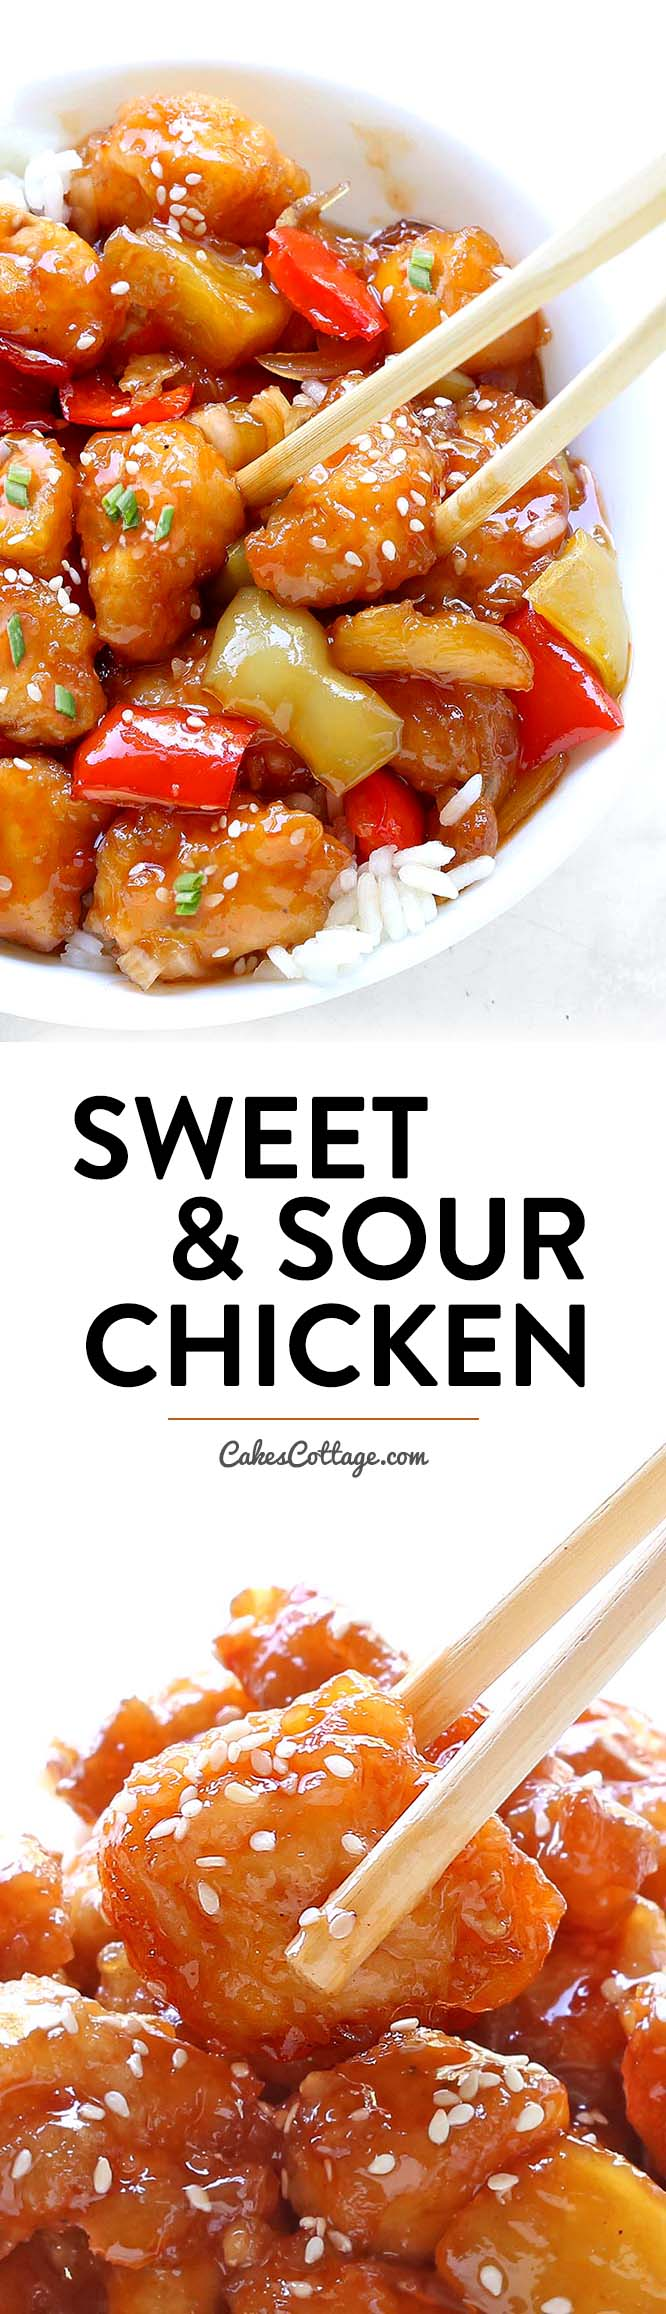 A Sweet and Sour Chicken recipe you can easily make right at home! And yes, it tastes a million times better (and healthier) than take-out!